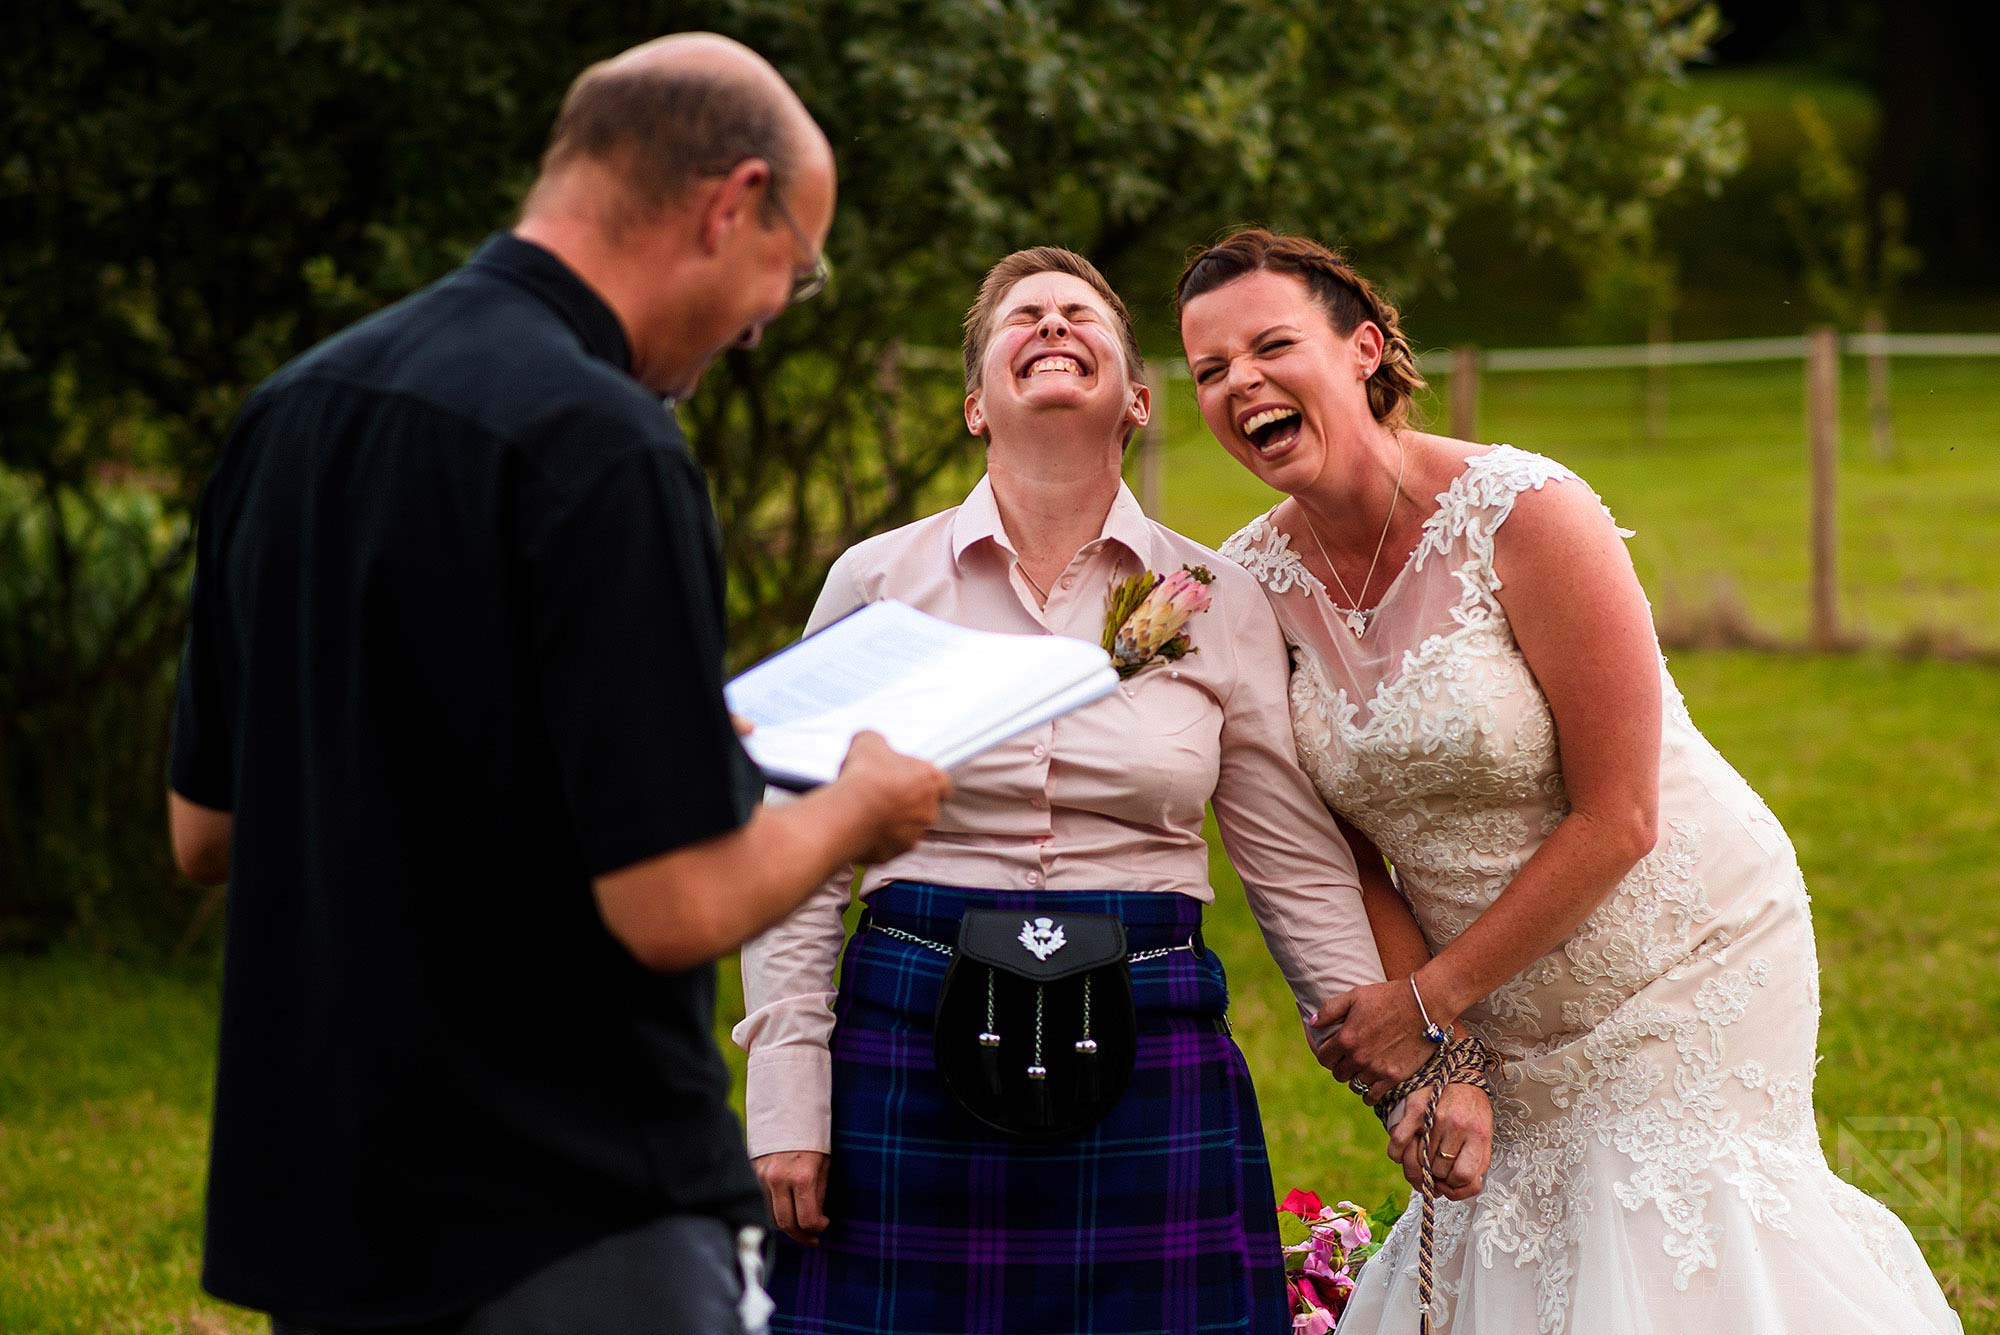 laughter and happiness during wedding ceremony